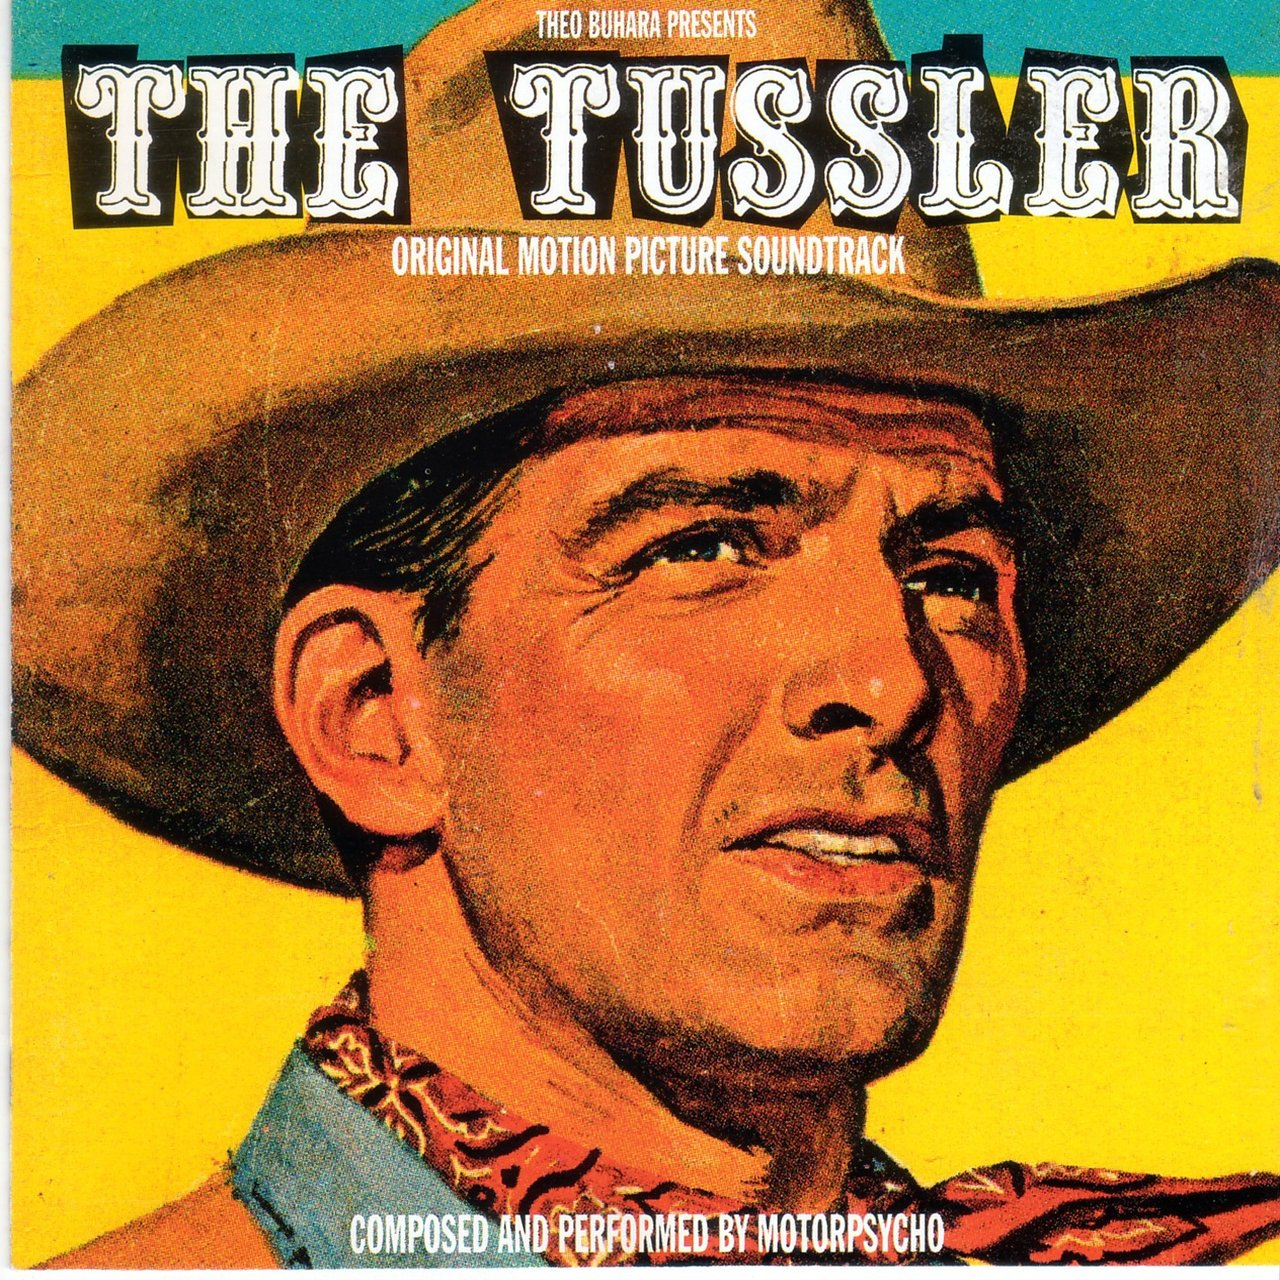 The Tussler